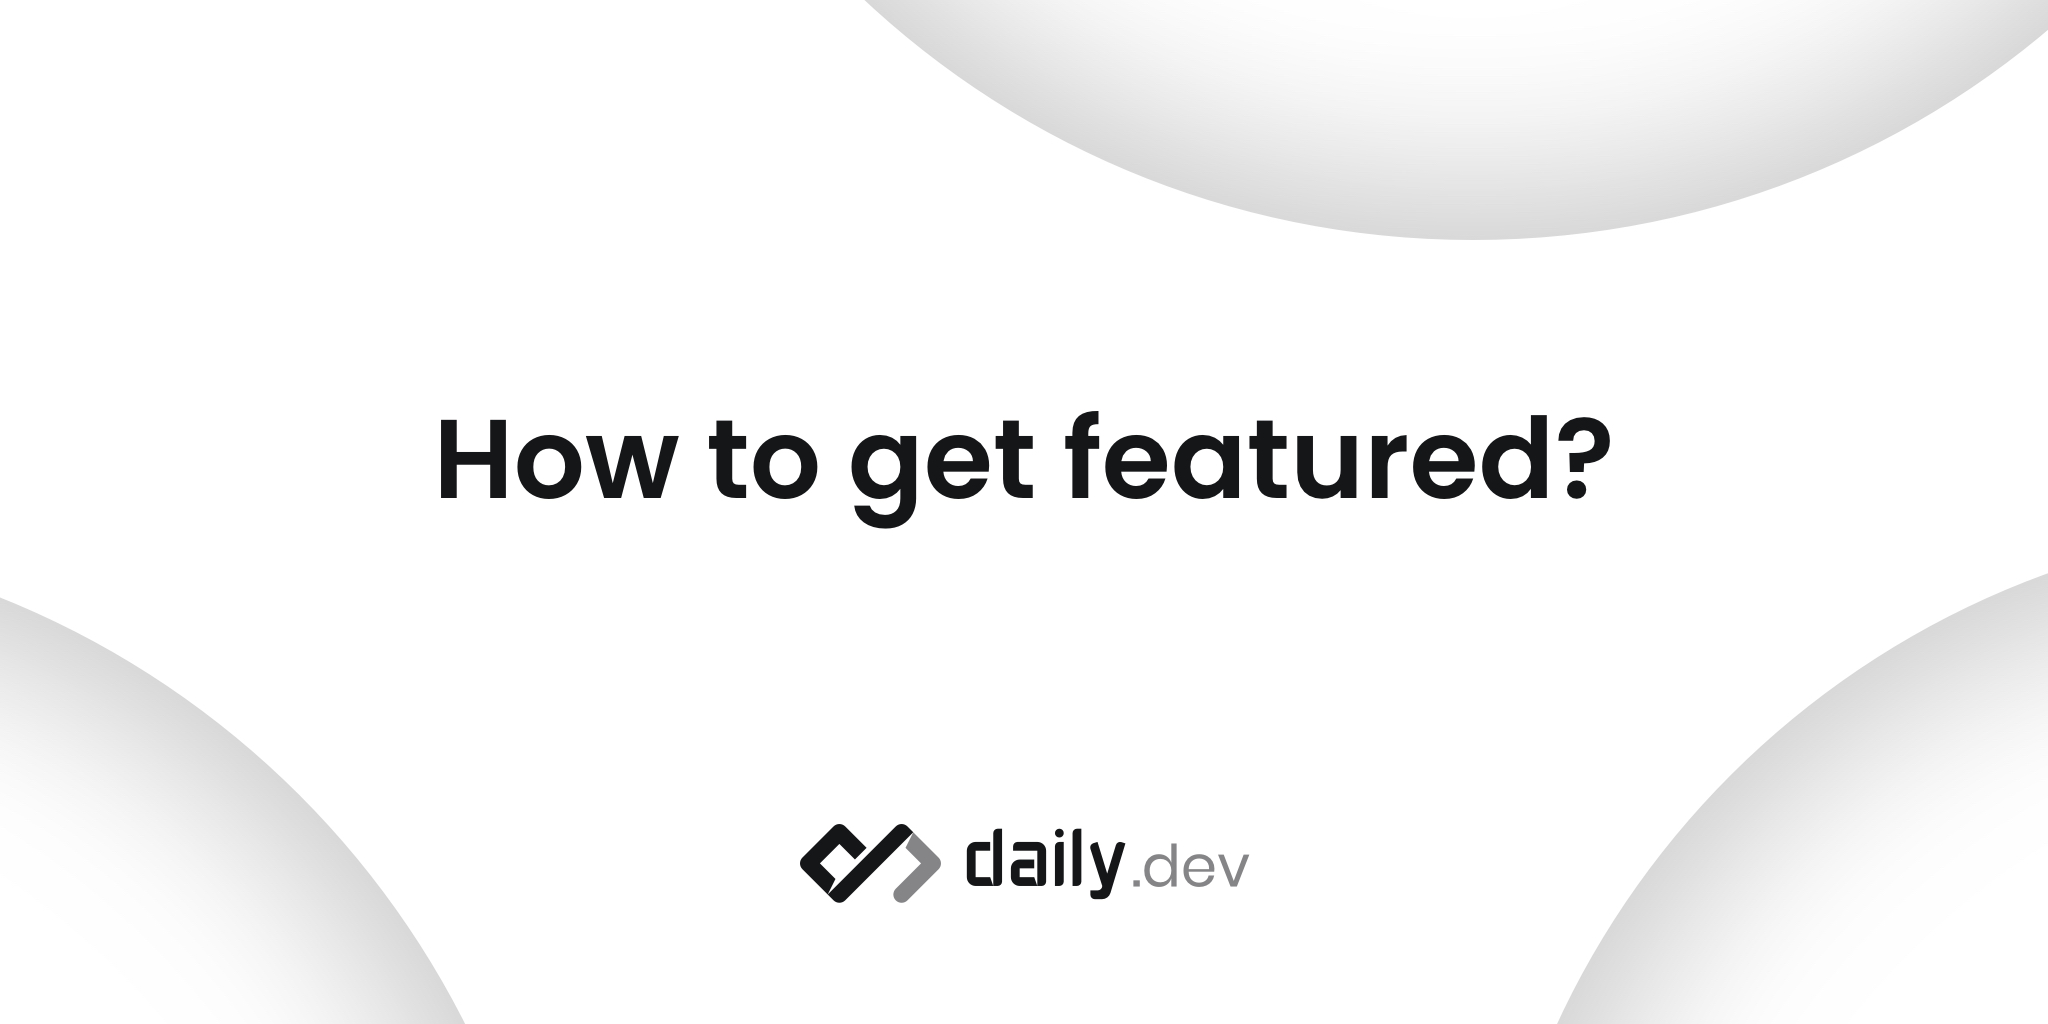 How to get featured on daily.dev?